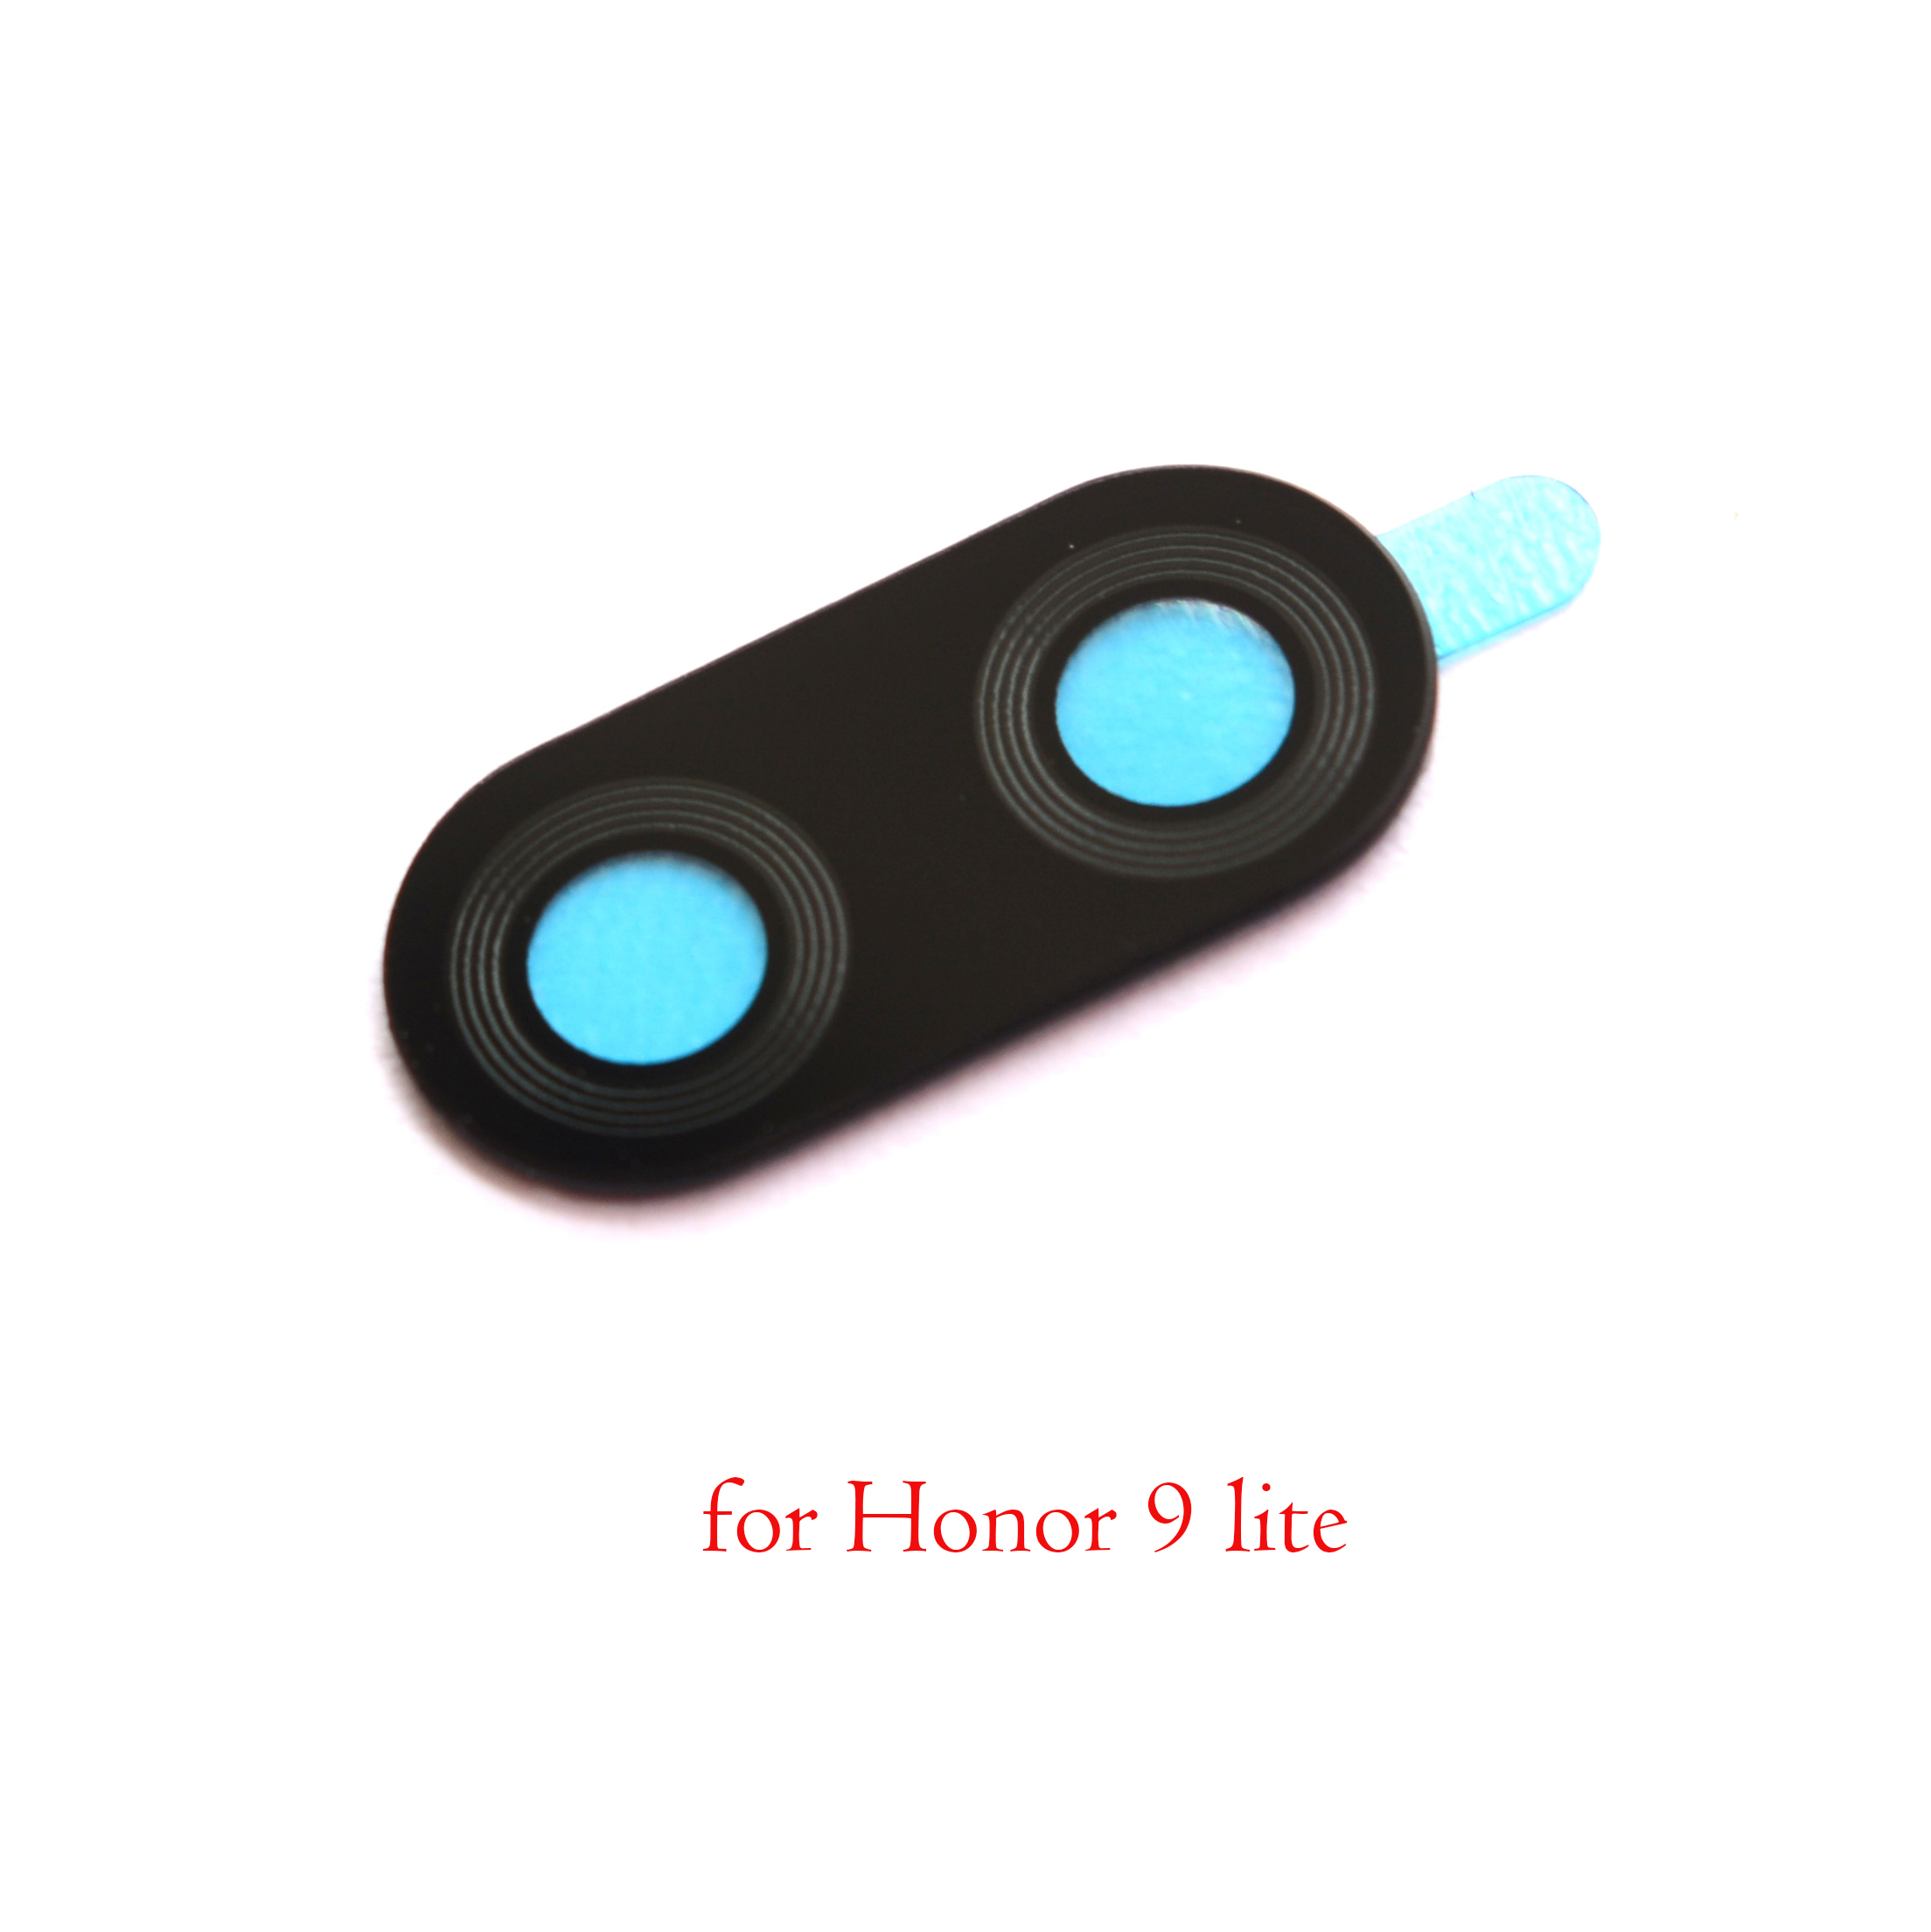 2pcs rear <font><b>camera</b></font> glass lens <font><b>cover</b></font> replacement with sticker glue for Huawei <font><b>Honor</b></font> <font><b>9</b></font> <font><b>lite</b></font> image